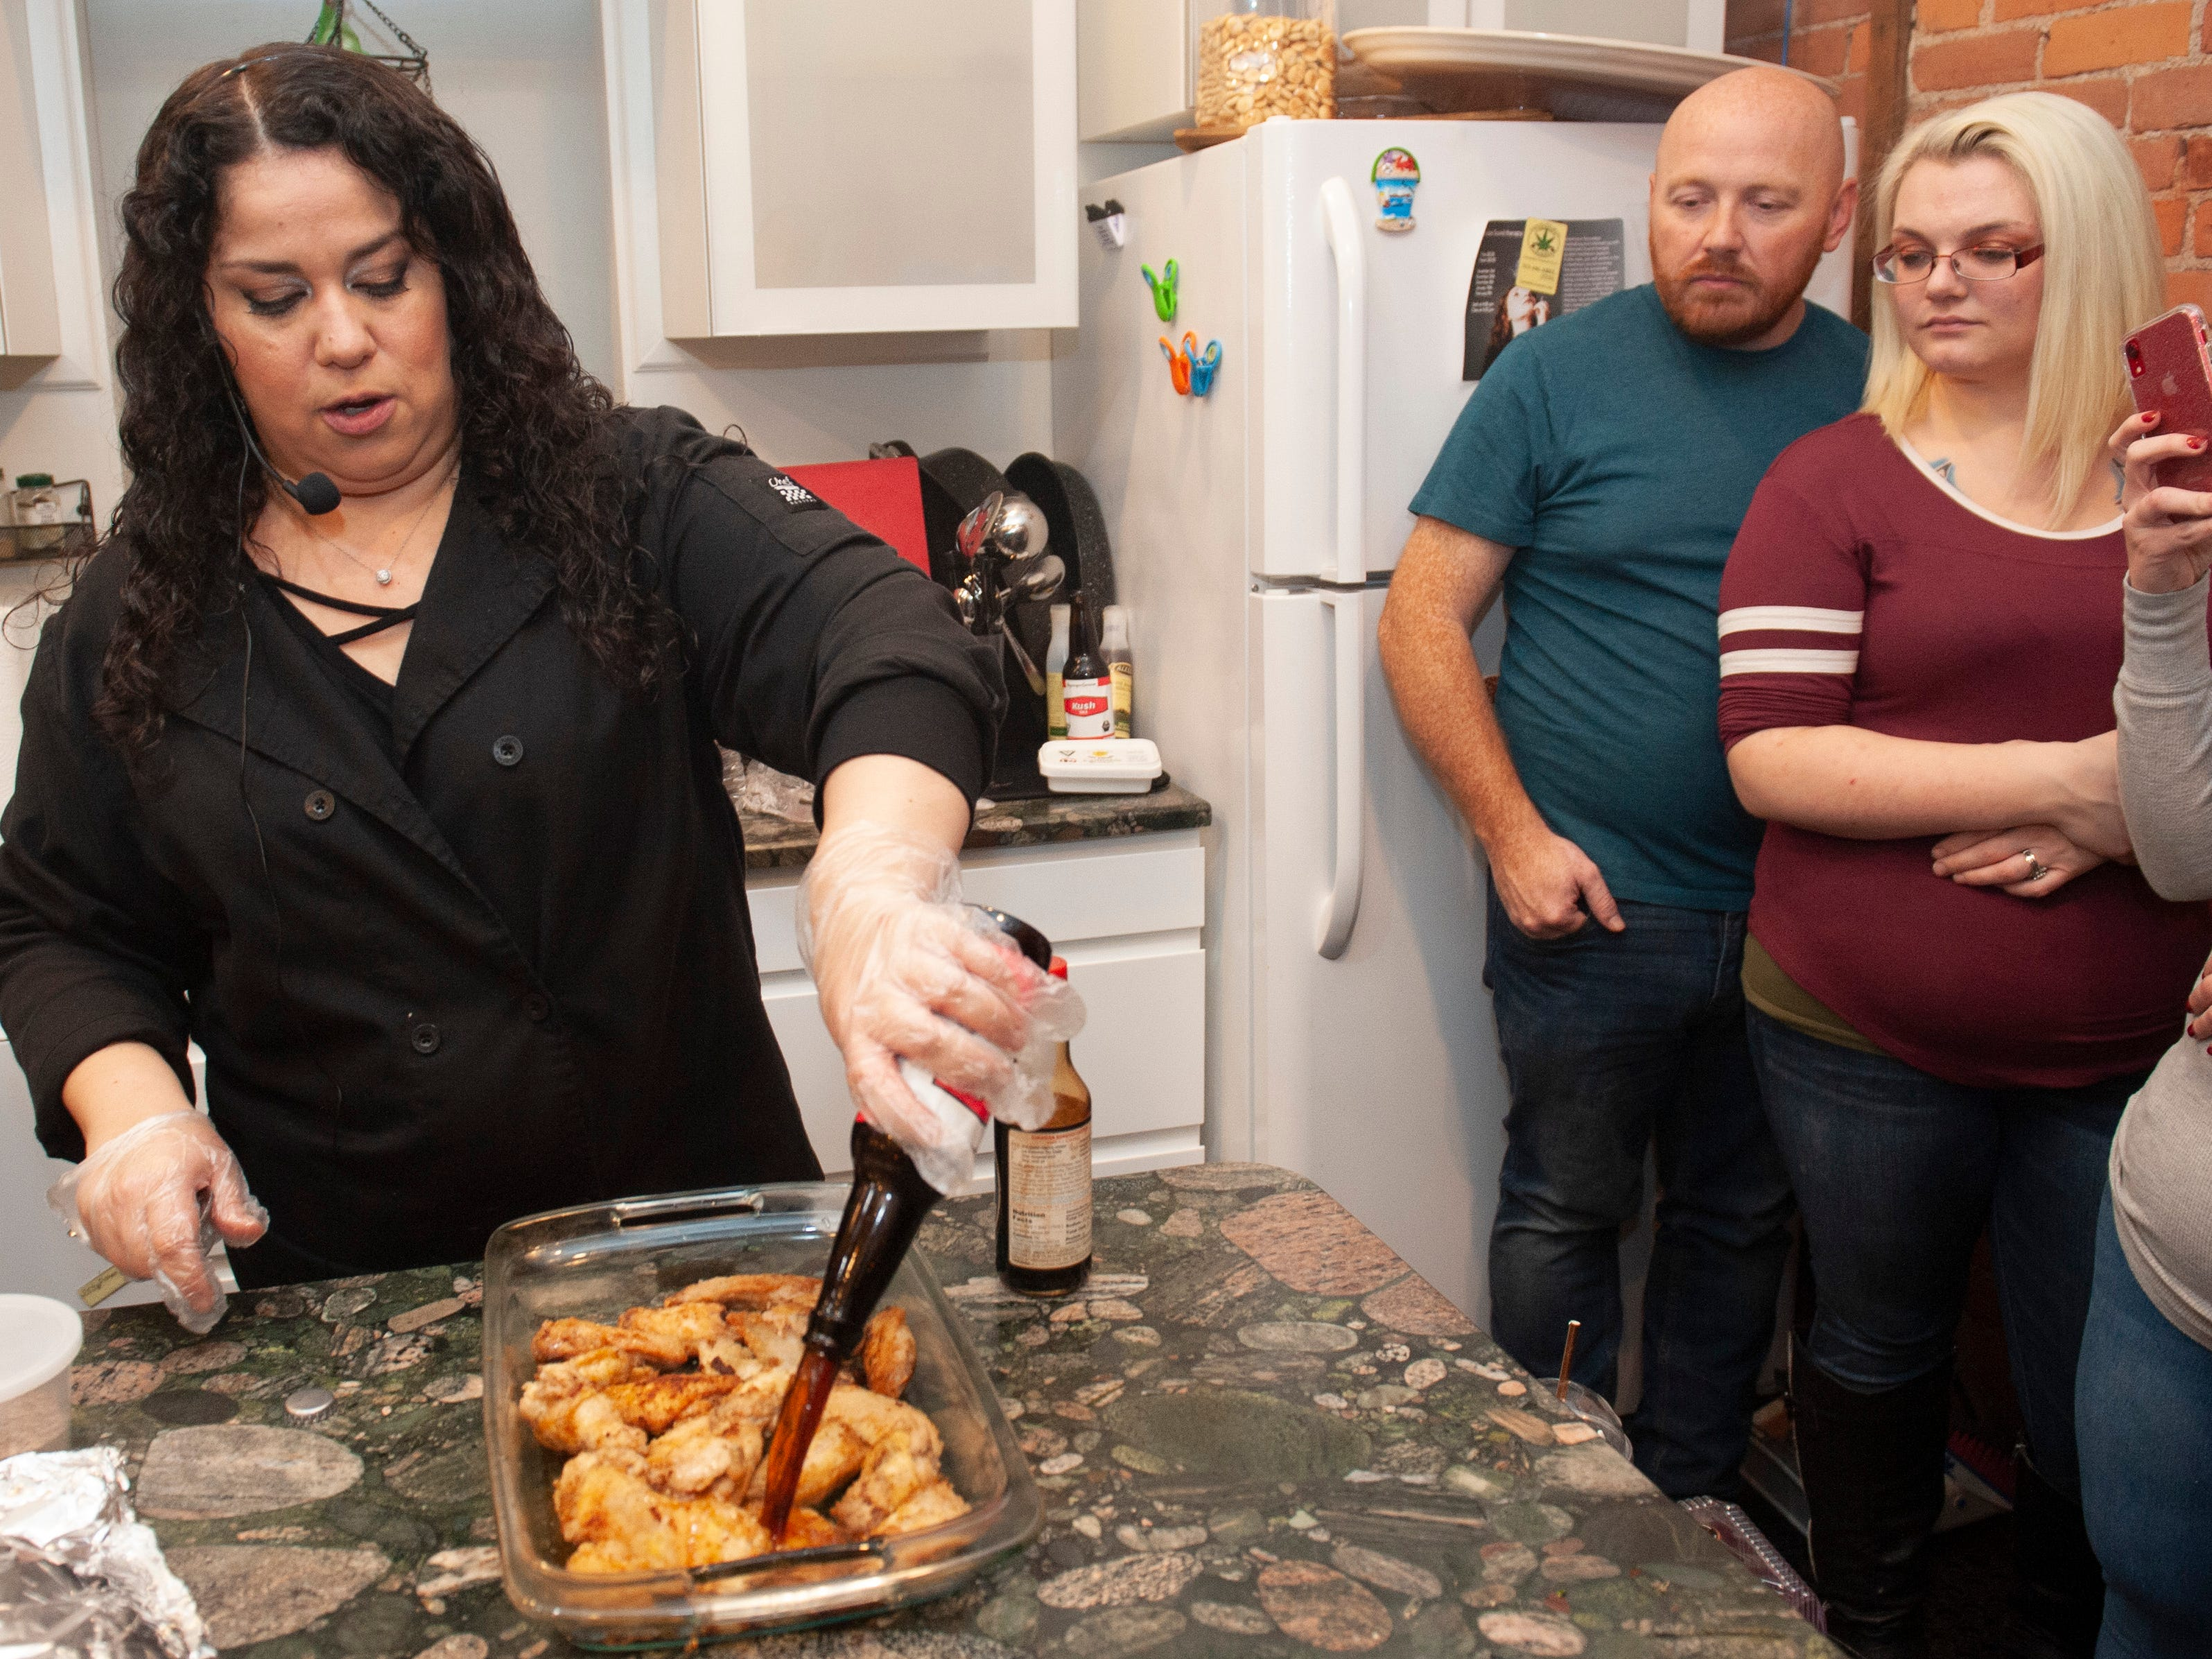 """Cannabis Concepts chef Gigi Diaz, who won High Times magazine's 2017 chef of the year award, pours THC-infused Kush Cola over her recipe for sweet cola chicken wings during a cooking demonstration at """"The Art of Cannabis"""" tasting and art exhibition at the Cannabis Counsel in Detroit on Dec. 22, 2018."""